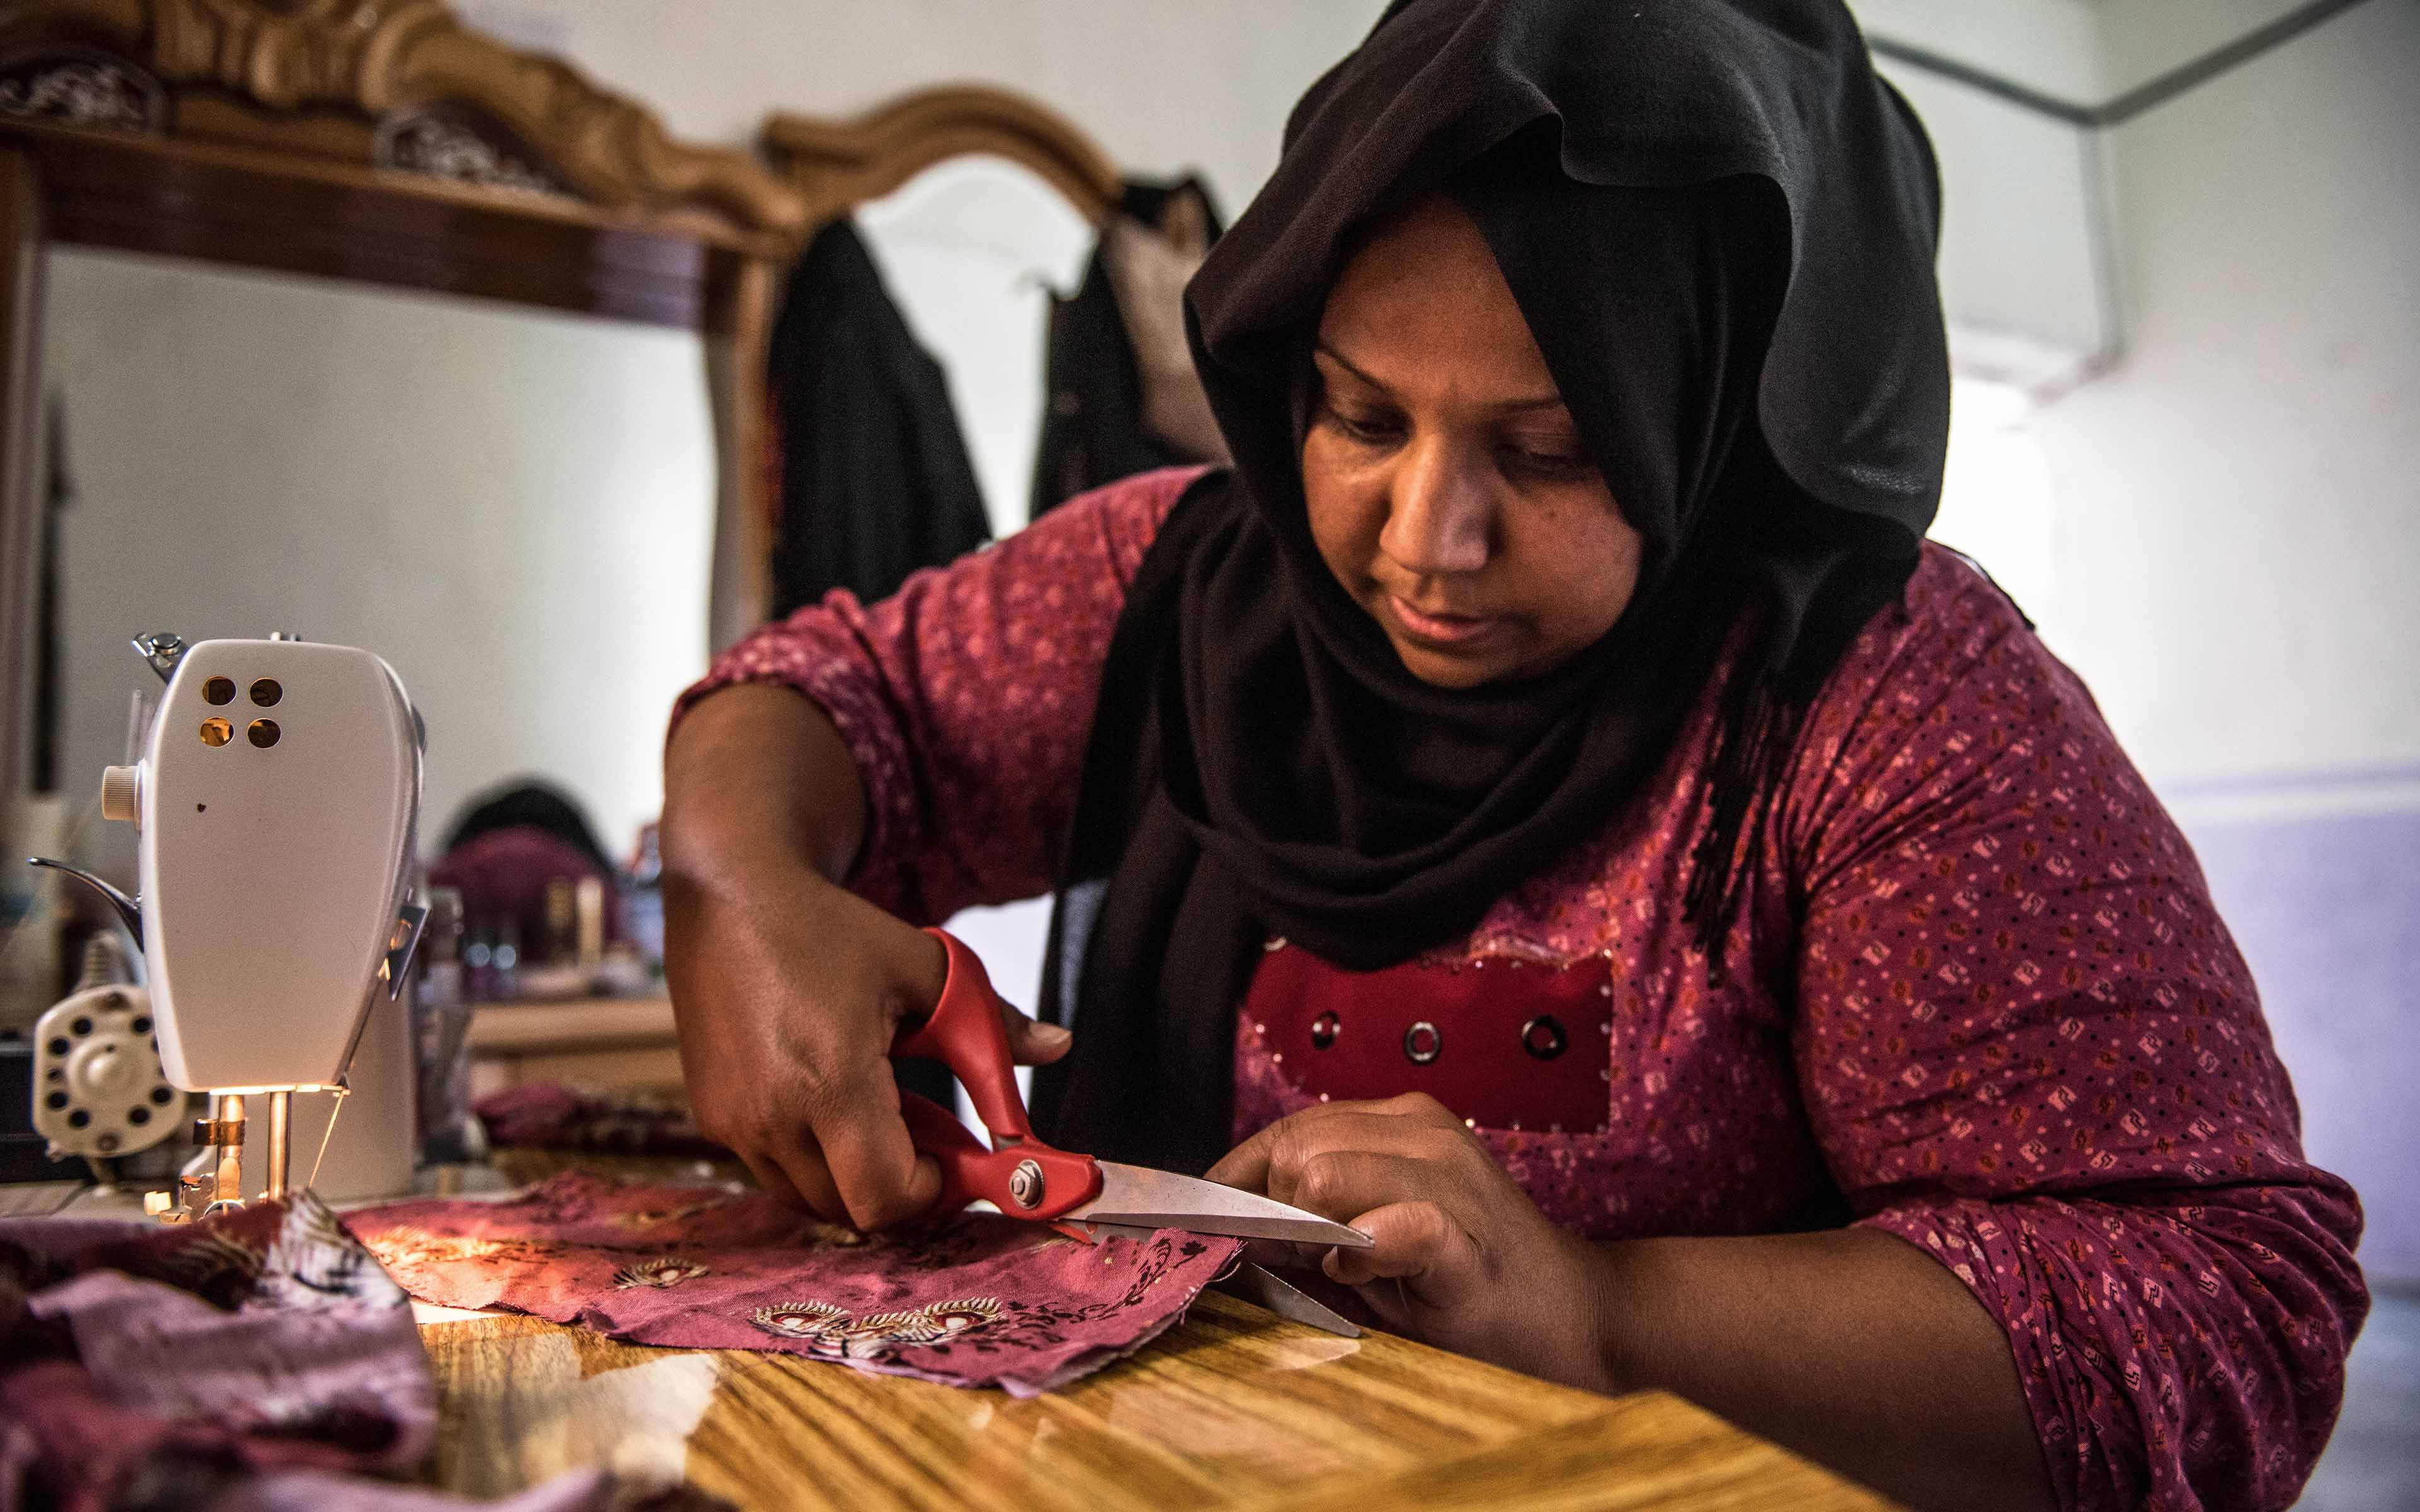 Zahia Hassan works at her sewing machine. After the occupation by ISIS ended, Hassan, whose name has been changed to protect her identity, returned to her community and, with Oxfam's help, has been striving to rebuild her business as a tailor for her village.